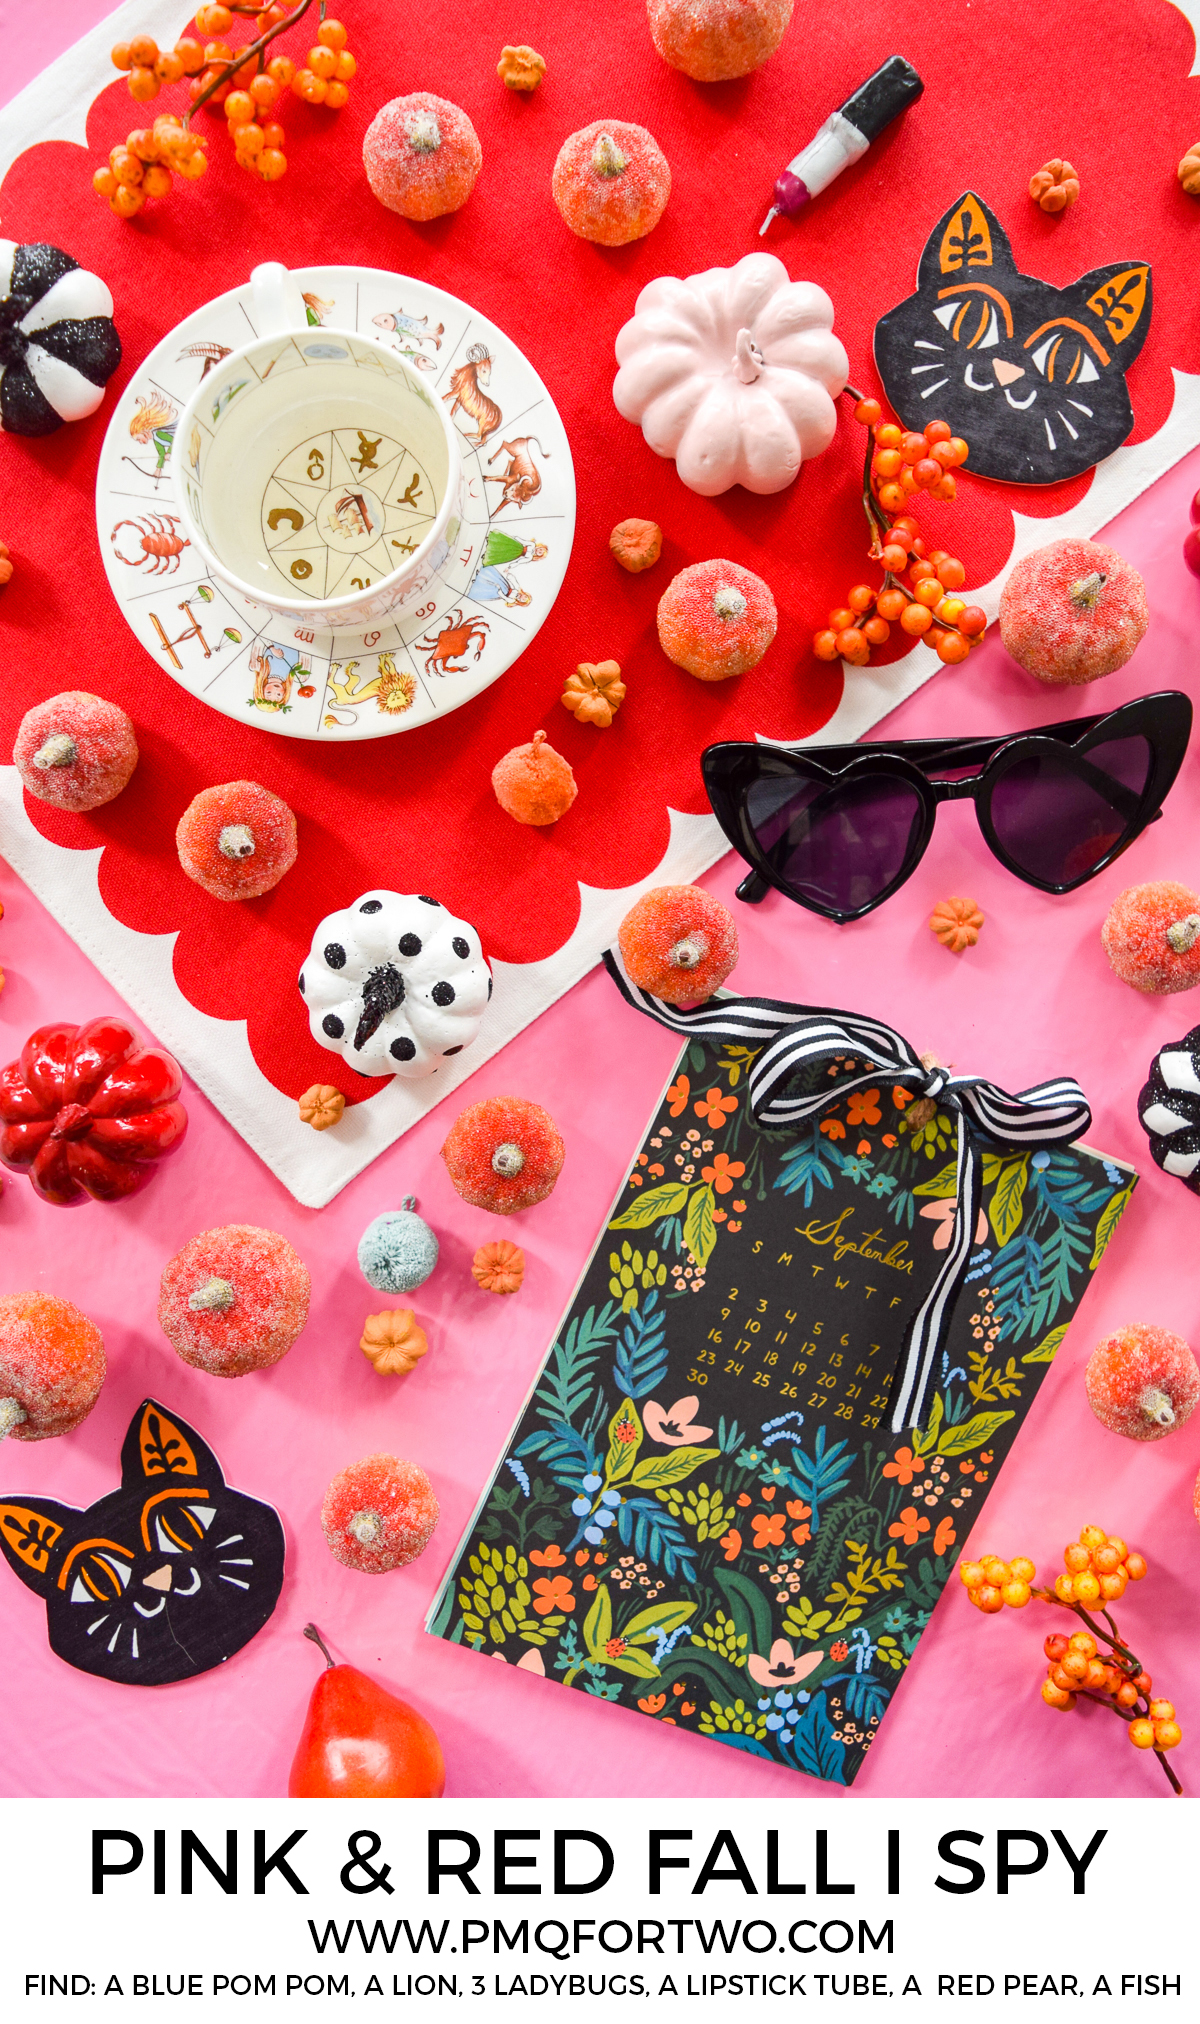 a pink and red flat lay tablescape with a calendar